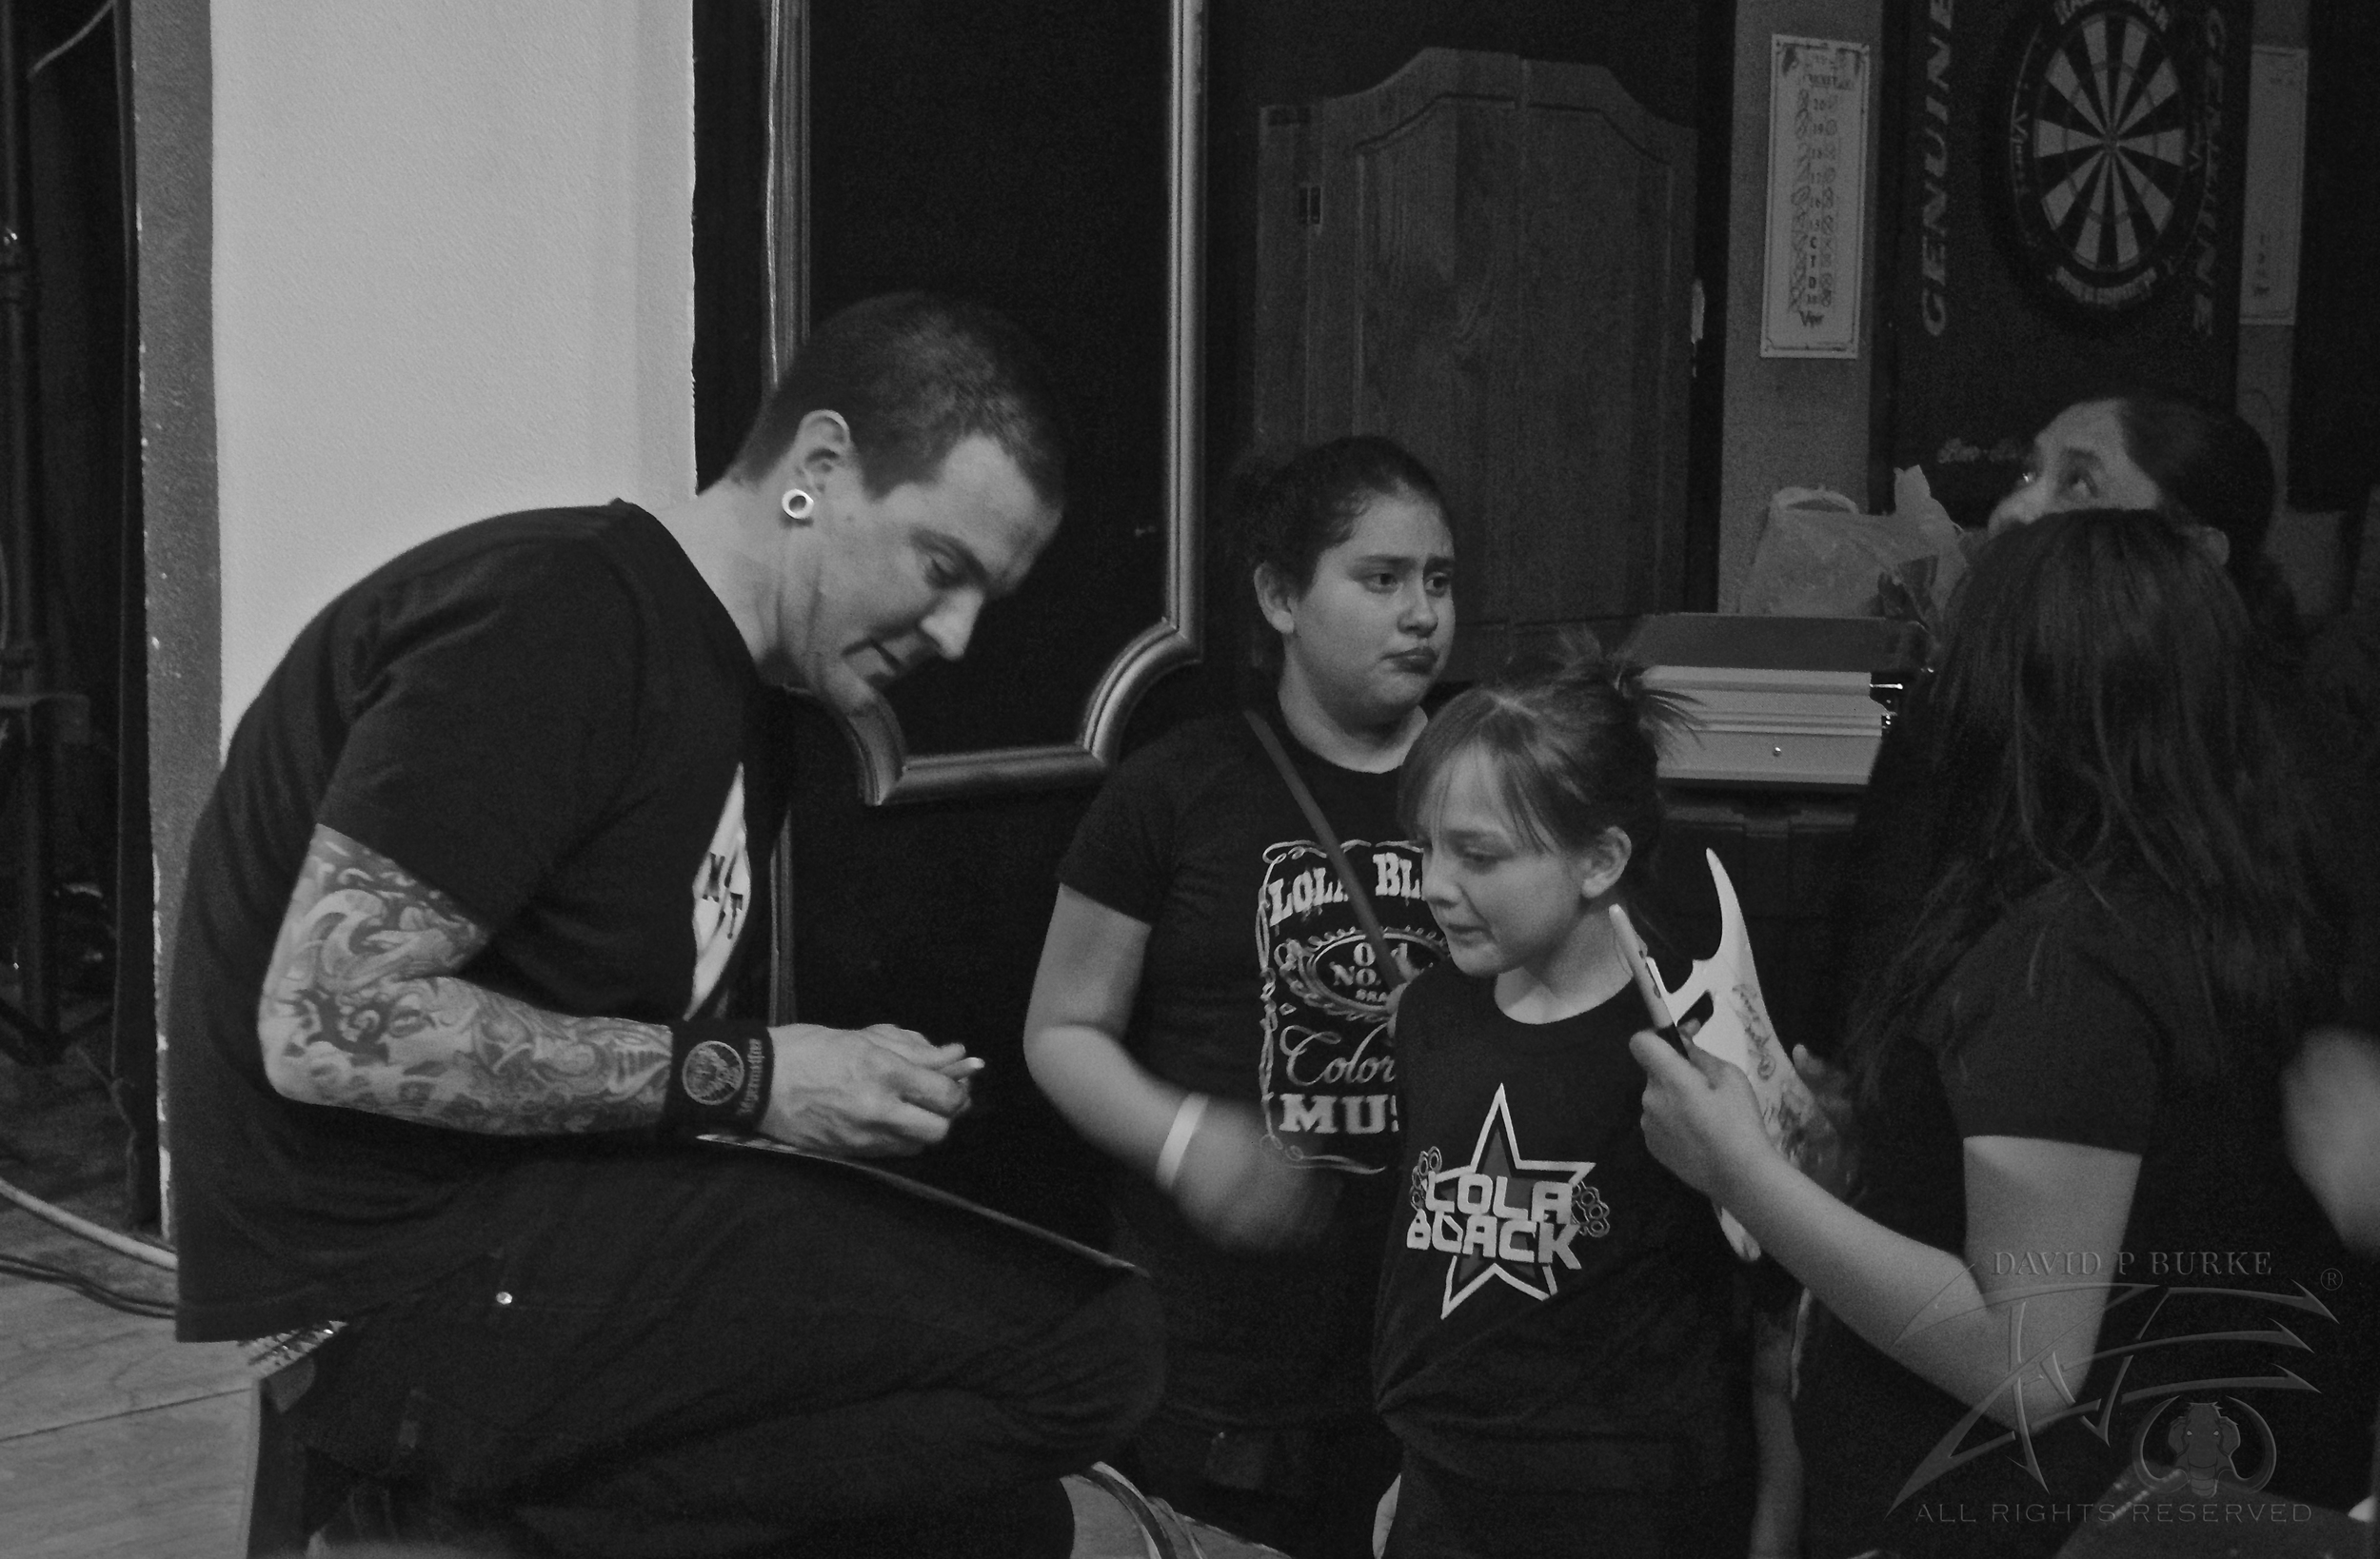 Lola Black guitarist Chris Dellinger gives his young fans the utmost respect before the show   photo: David Burke